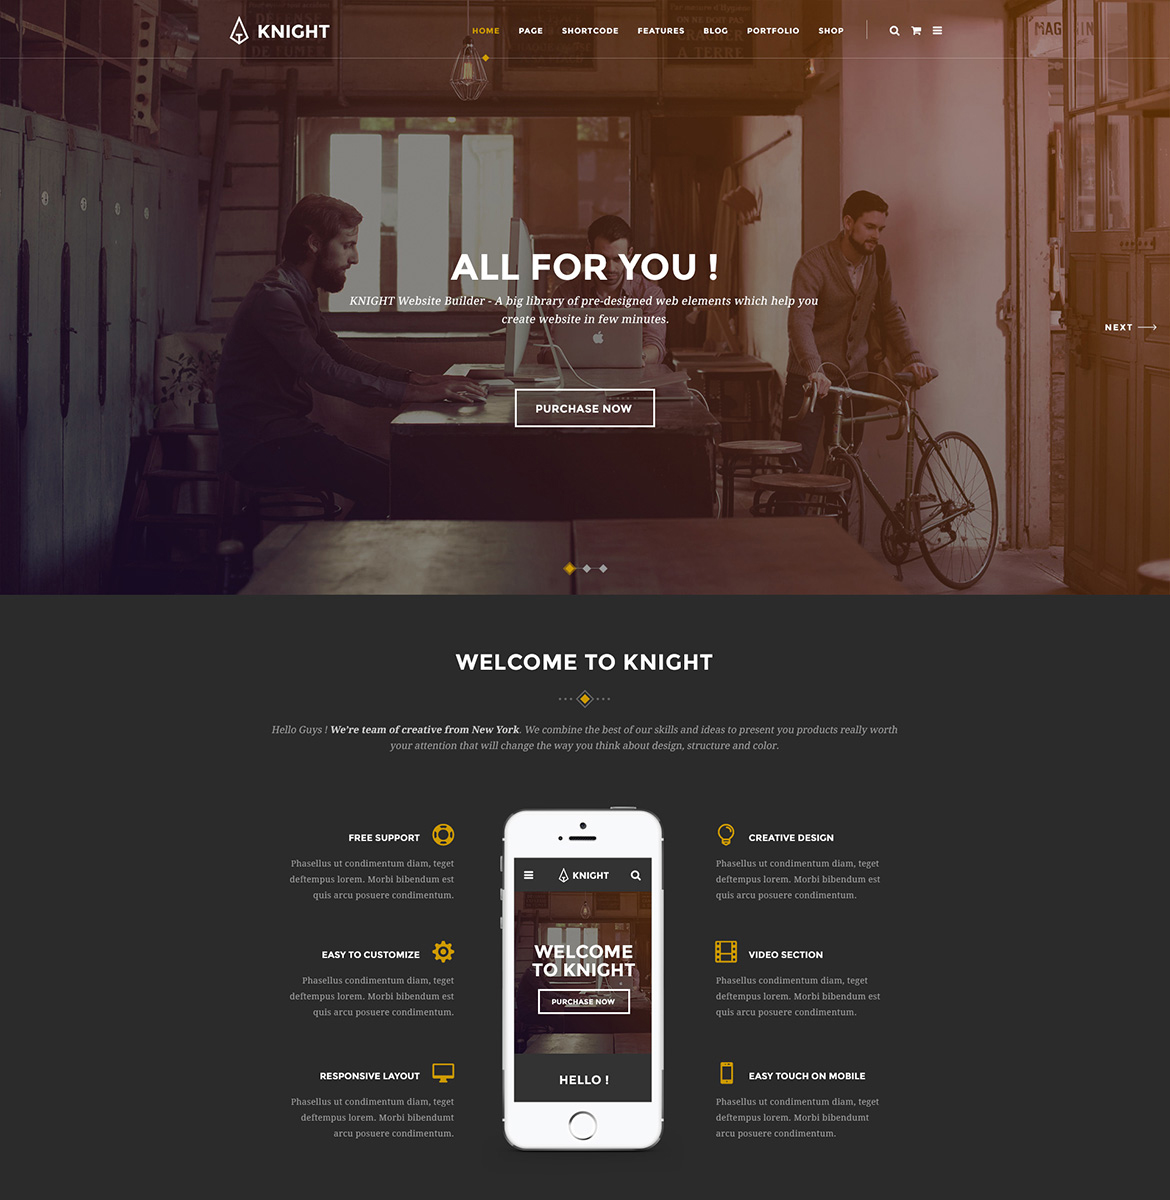 Knight corporate and shop psd template 64843 zoom in toneelgroepblik Choice Image